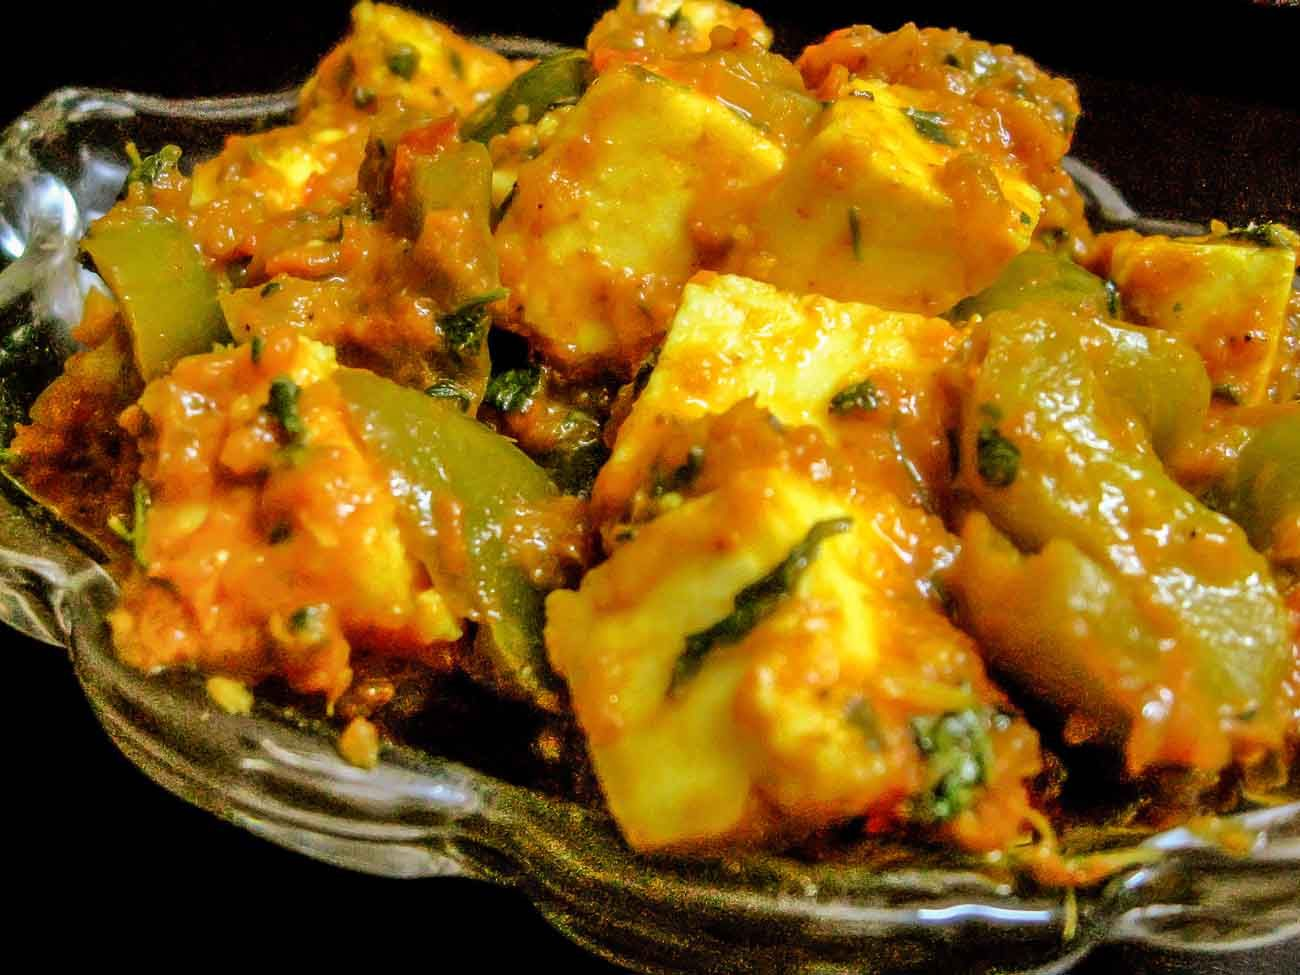 Kadai paneer recipe spiced cottage cheese with green bell peppers heres kadai paneer recipe or lunch on sunday delicious north indian dish and best for guests forumfinder Images